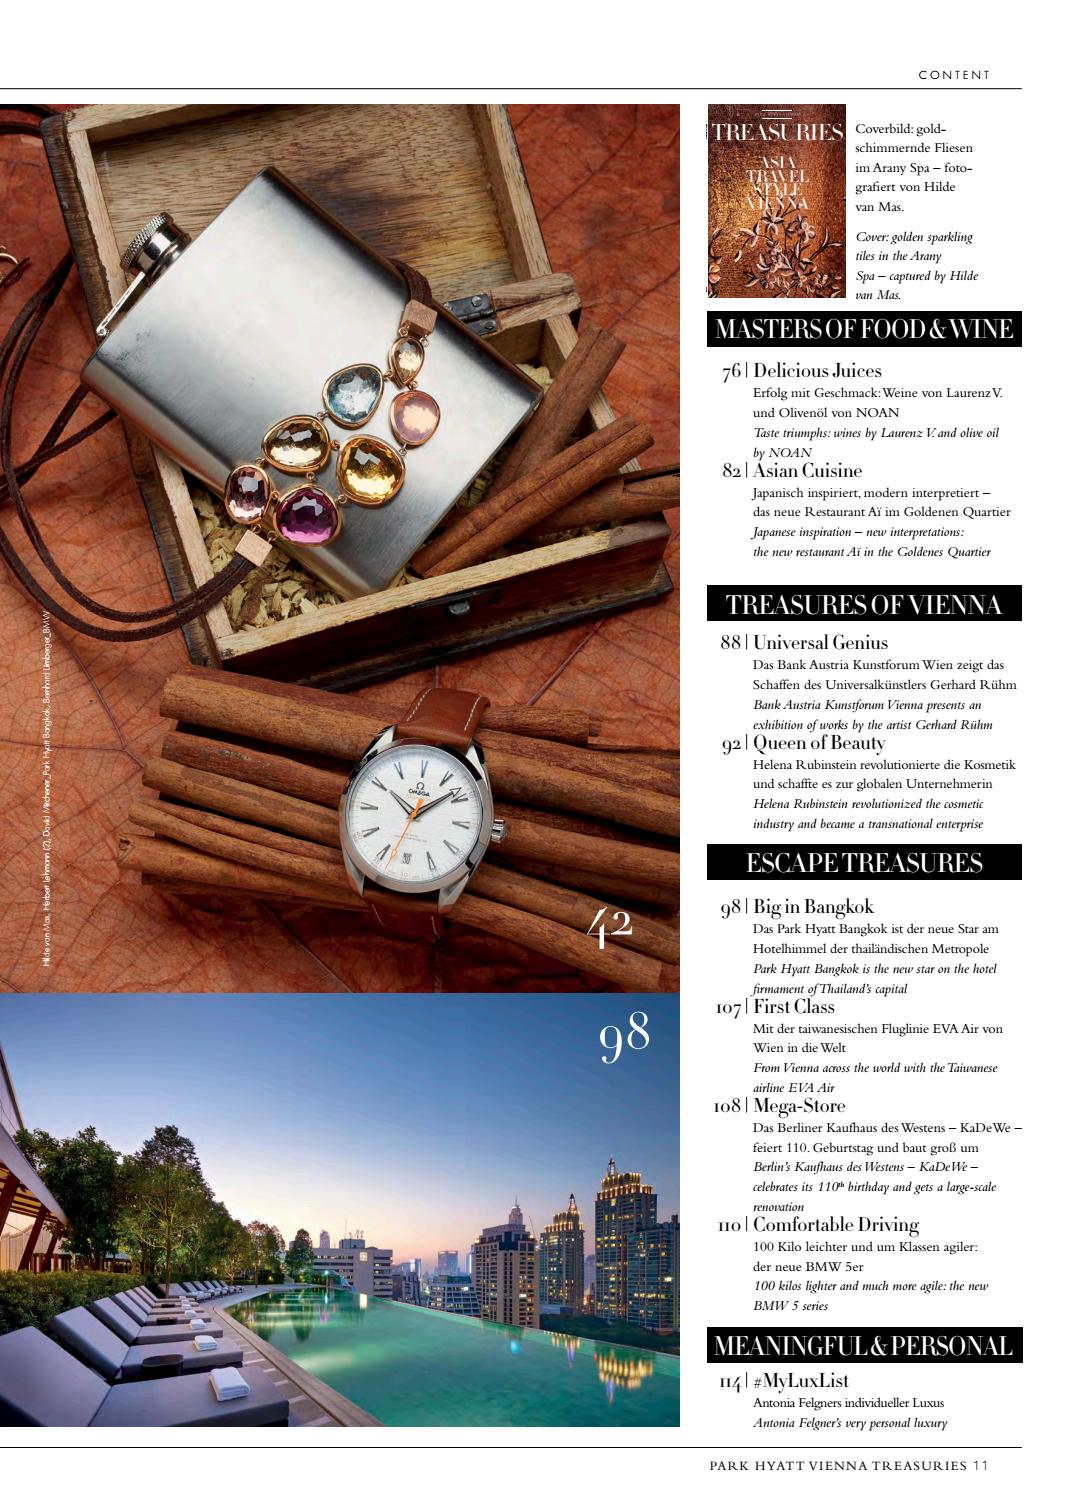 Park Hyatt Vienna Treasuries 02 2017 by Christian Lerner - issuu